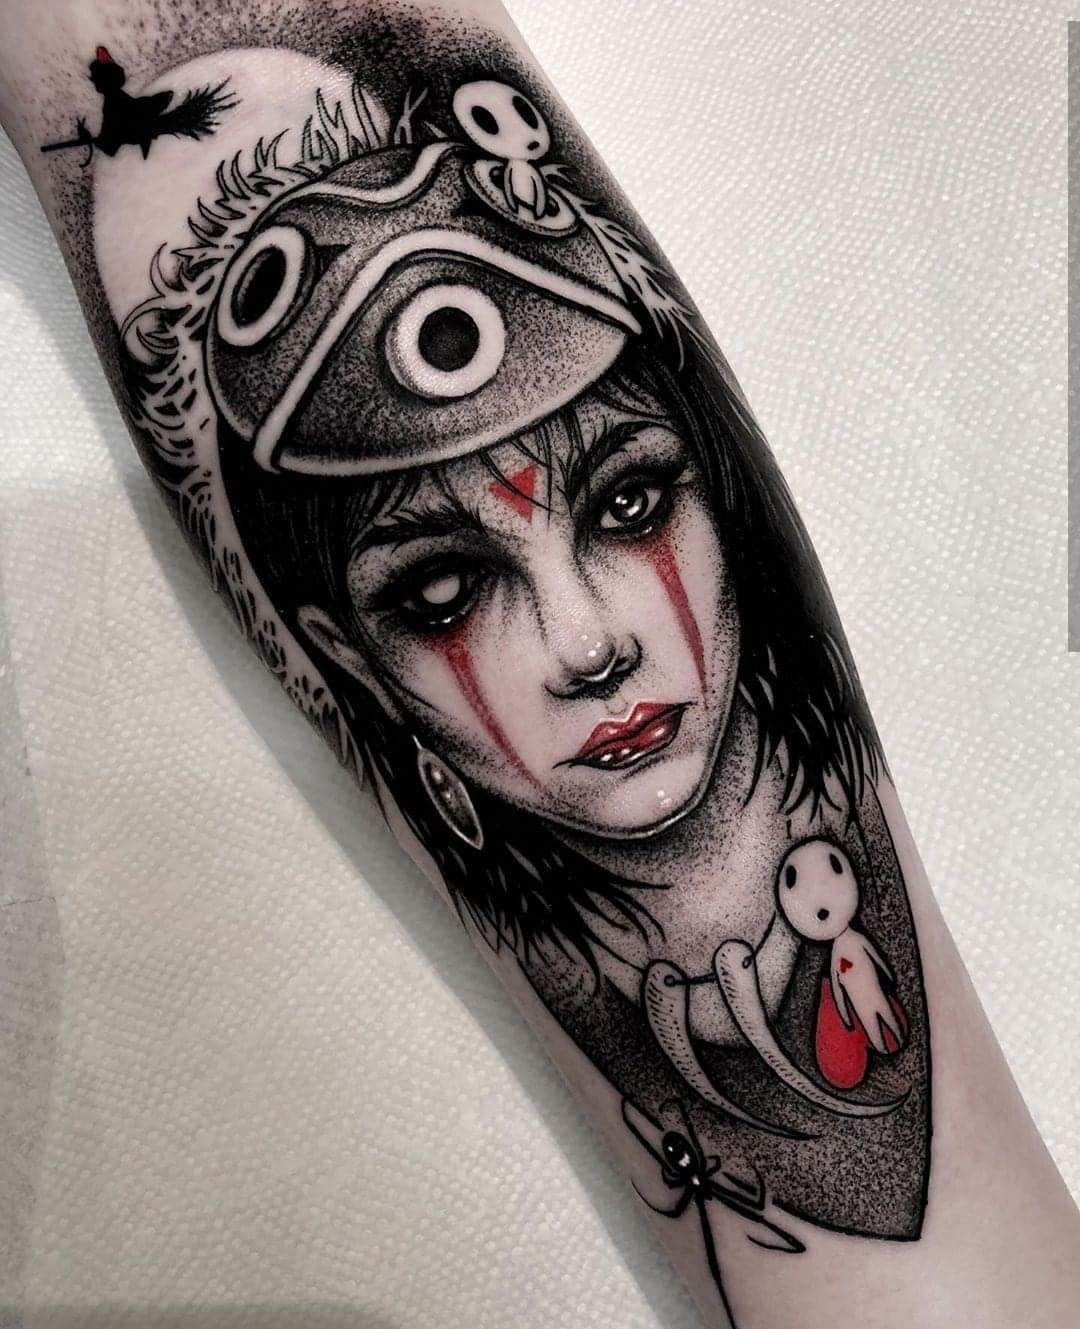 Pin By Zombie Tophat On Tattoos Tattoos Witch Tattoo Anime Tattoos